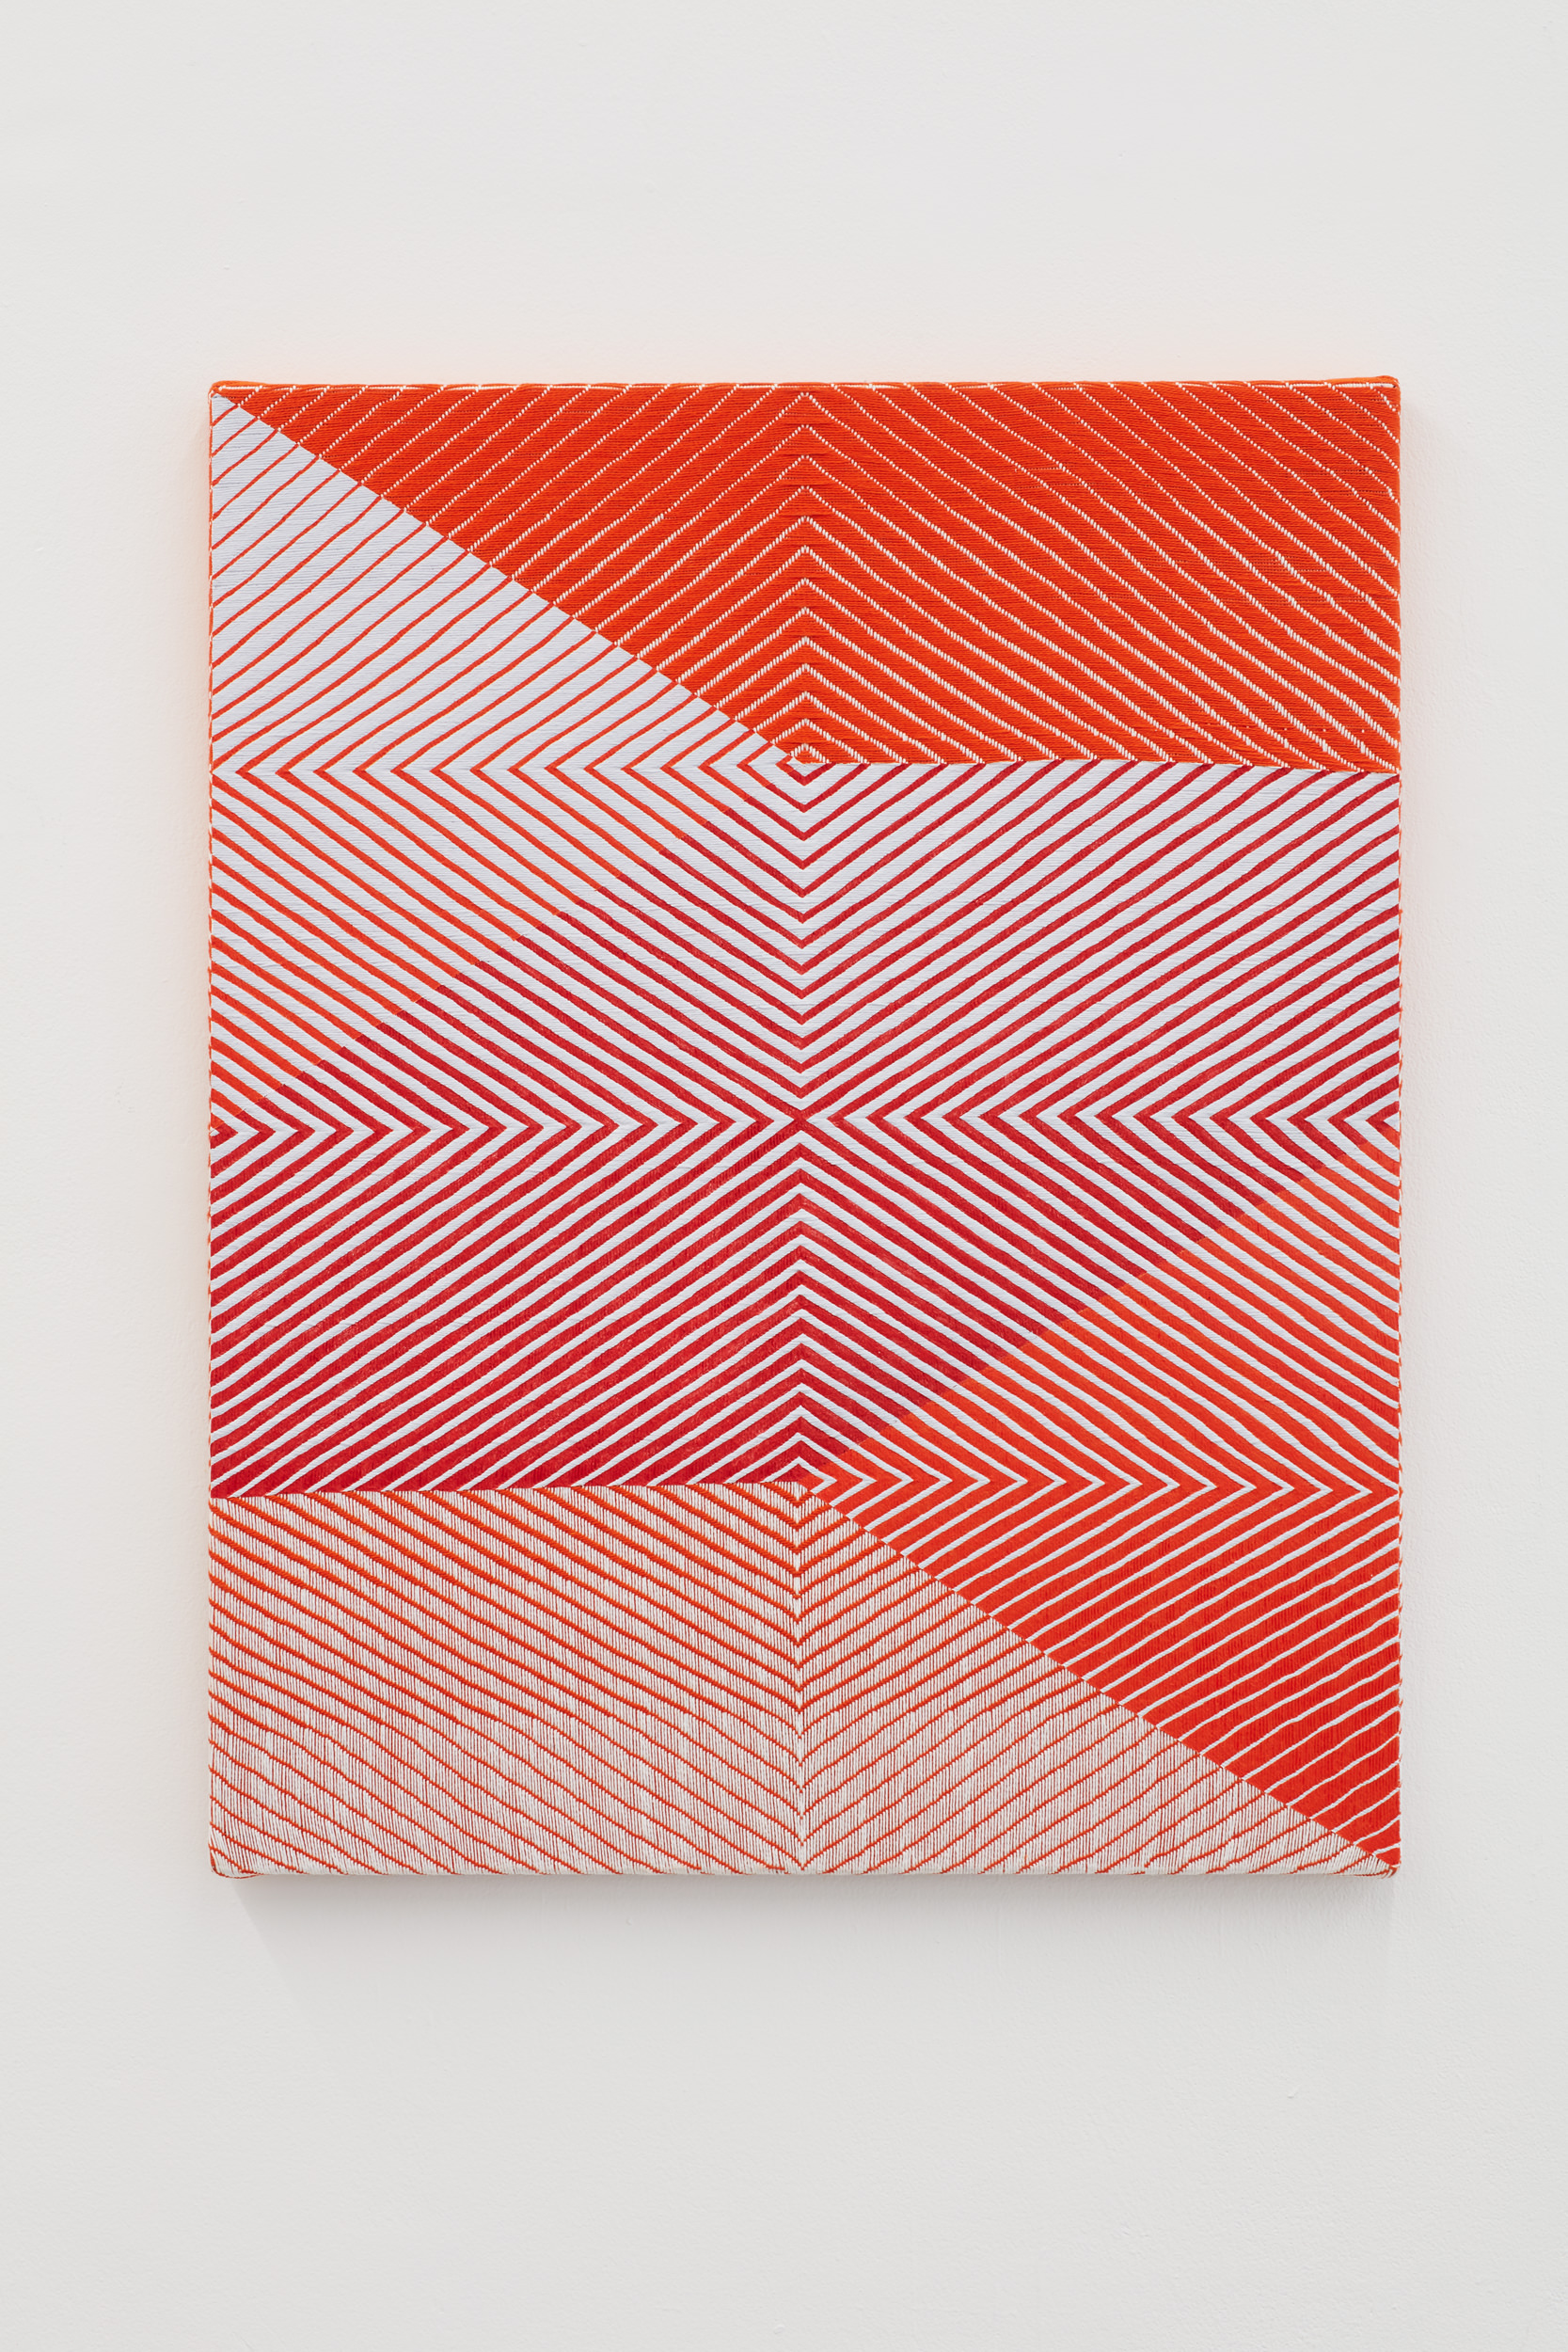 Samantha Bittman, Untitled, 2017, acrylic on hand-woven textile, 30×24 inc, inv. n. 2017-027